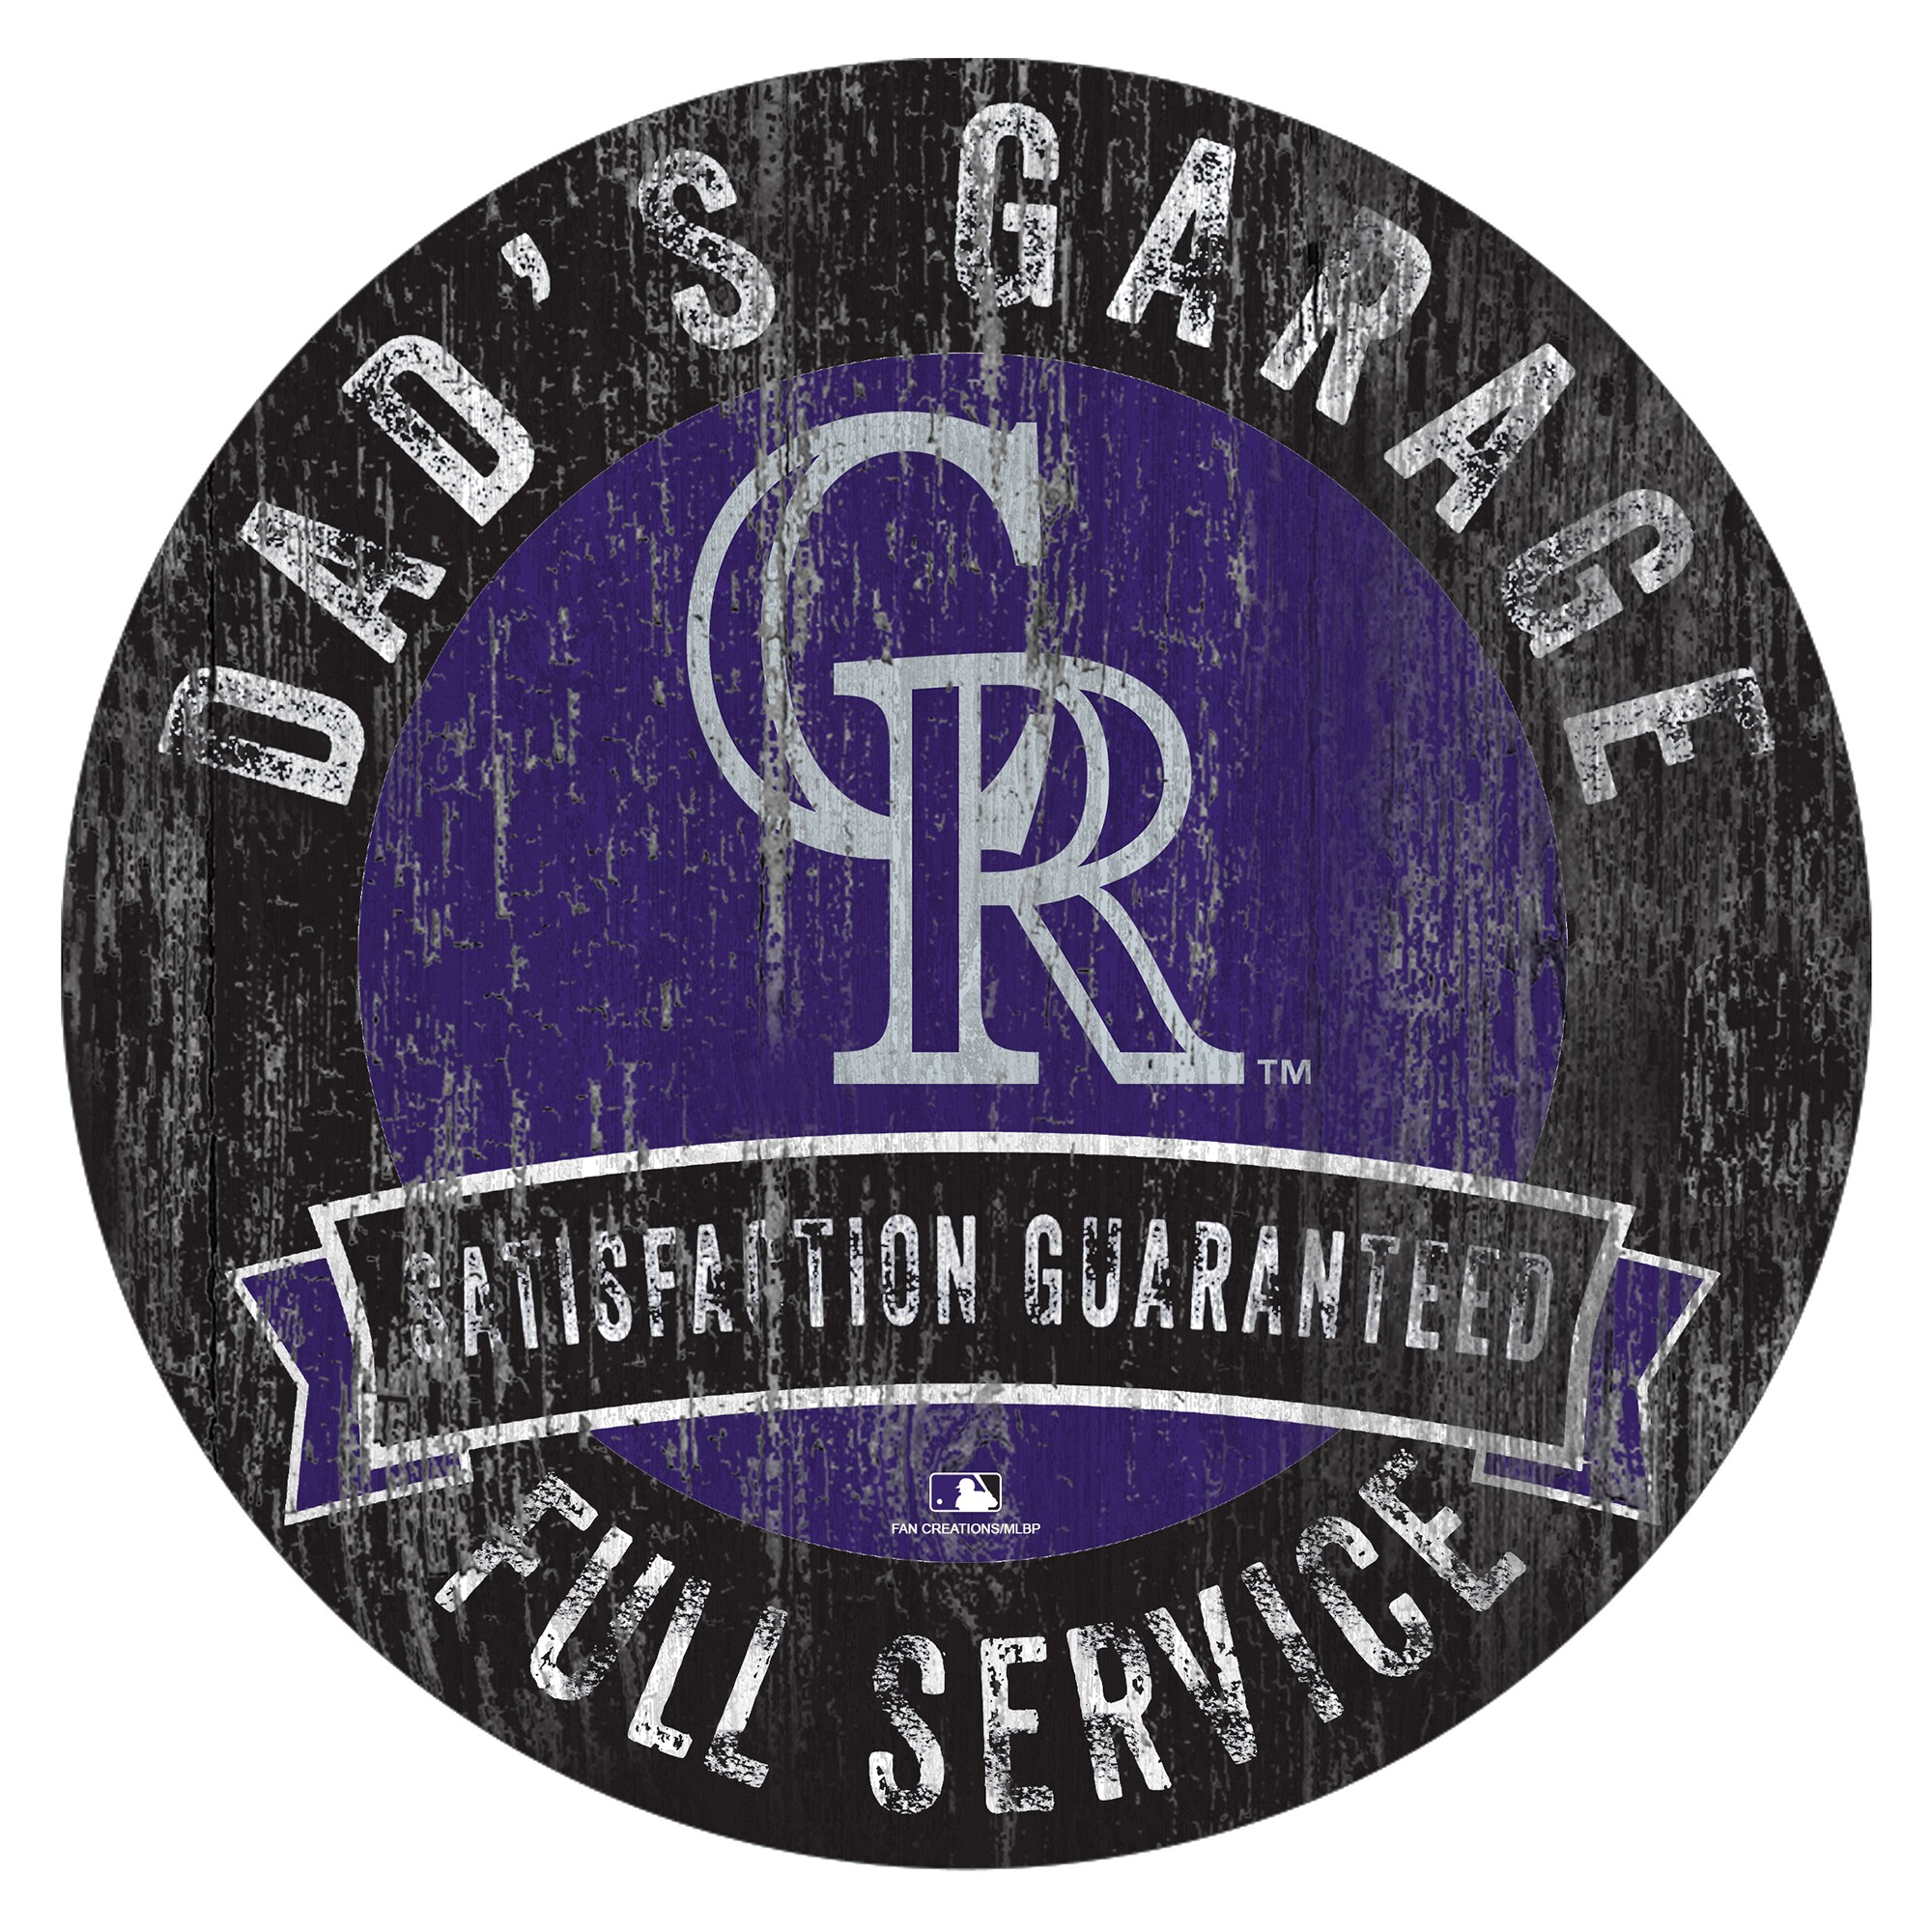 "Colorado Rockies 12"" x 12"" Dad's Garage Sign"